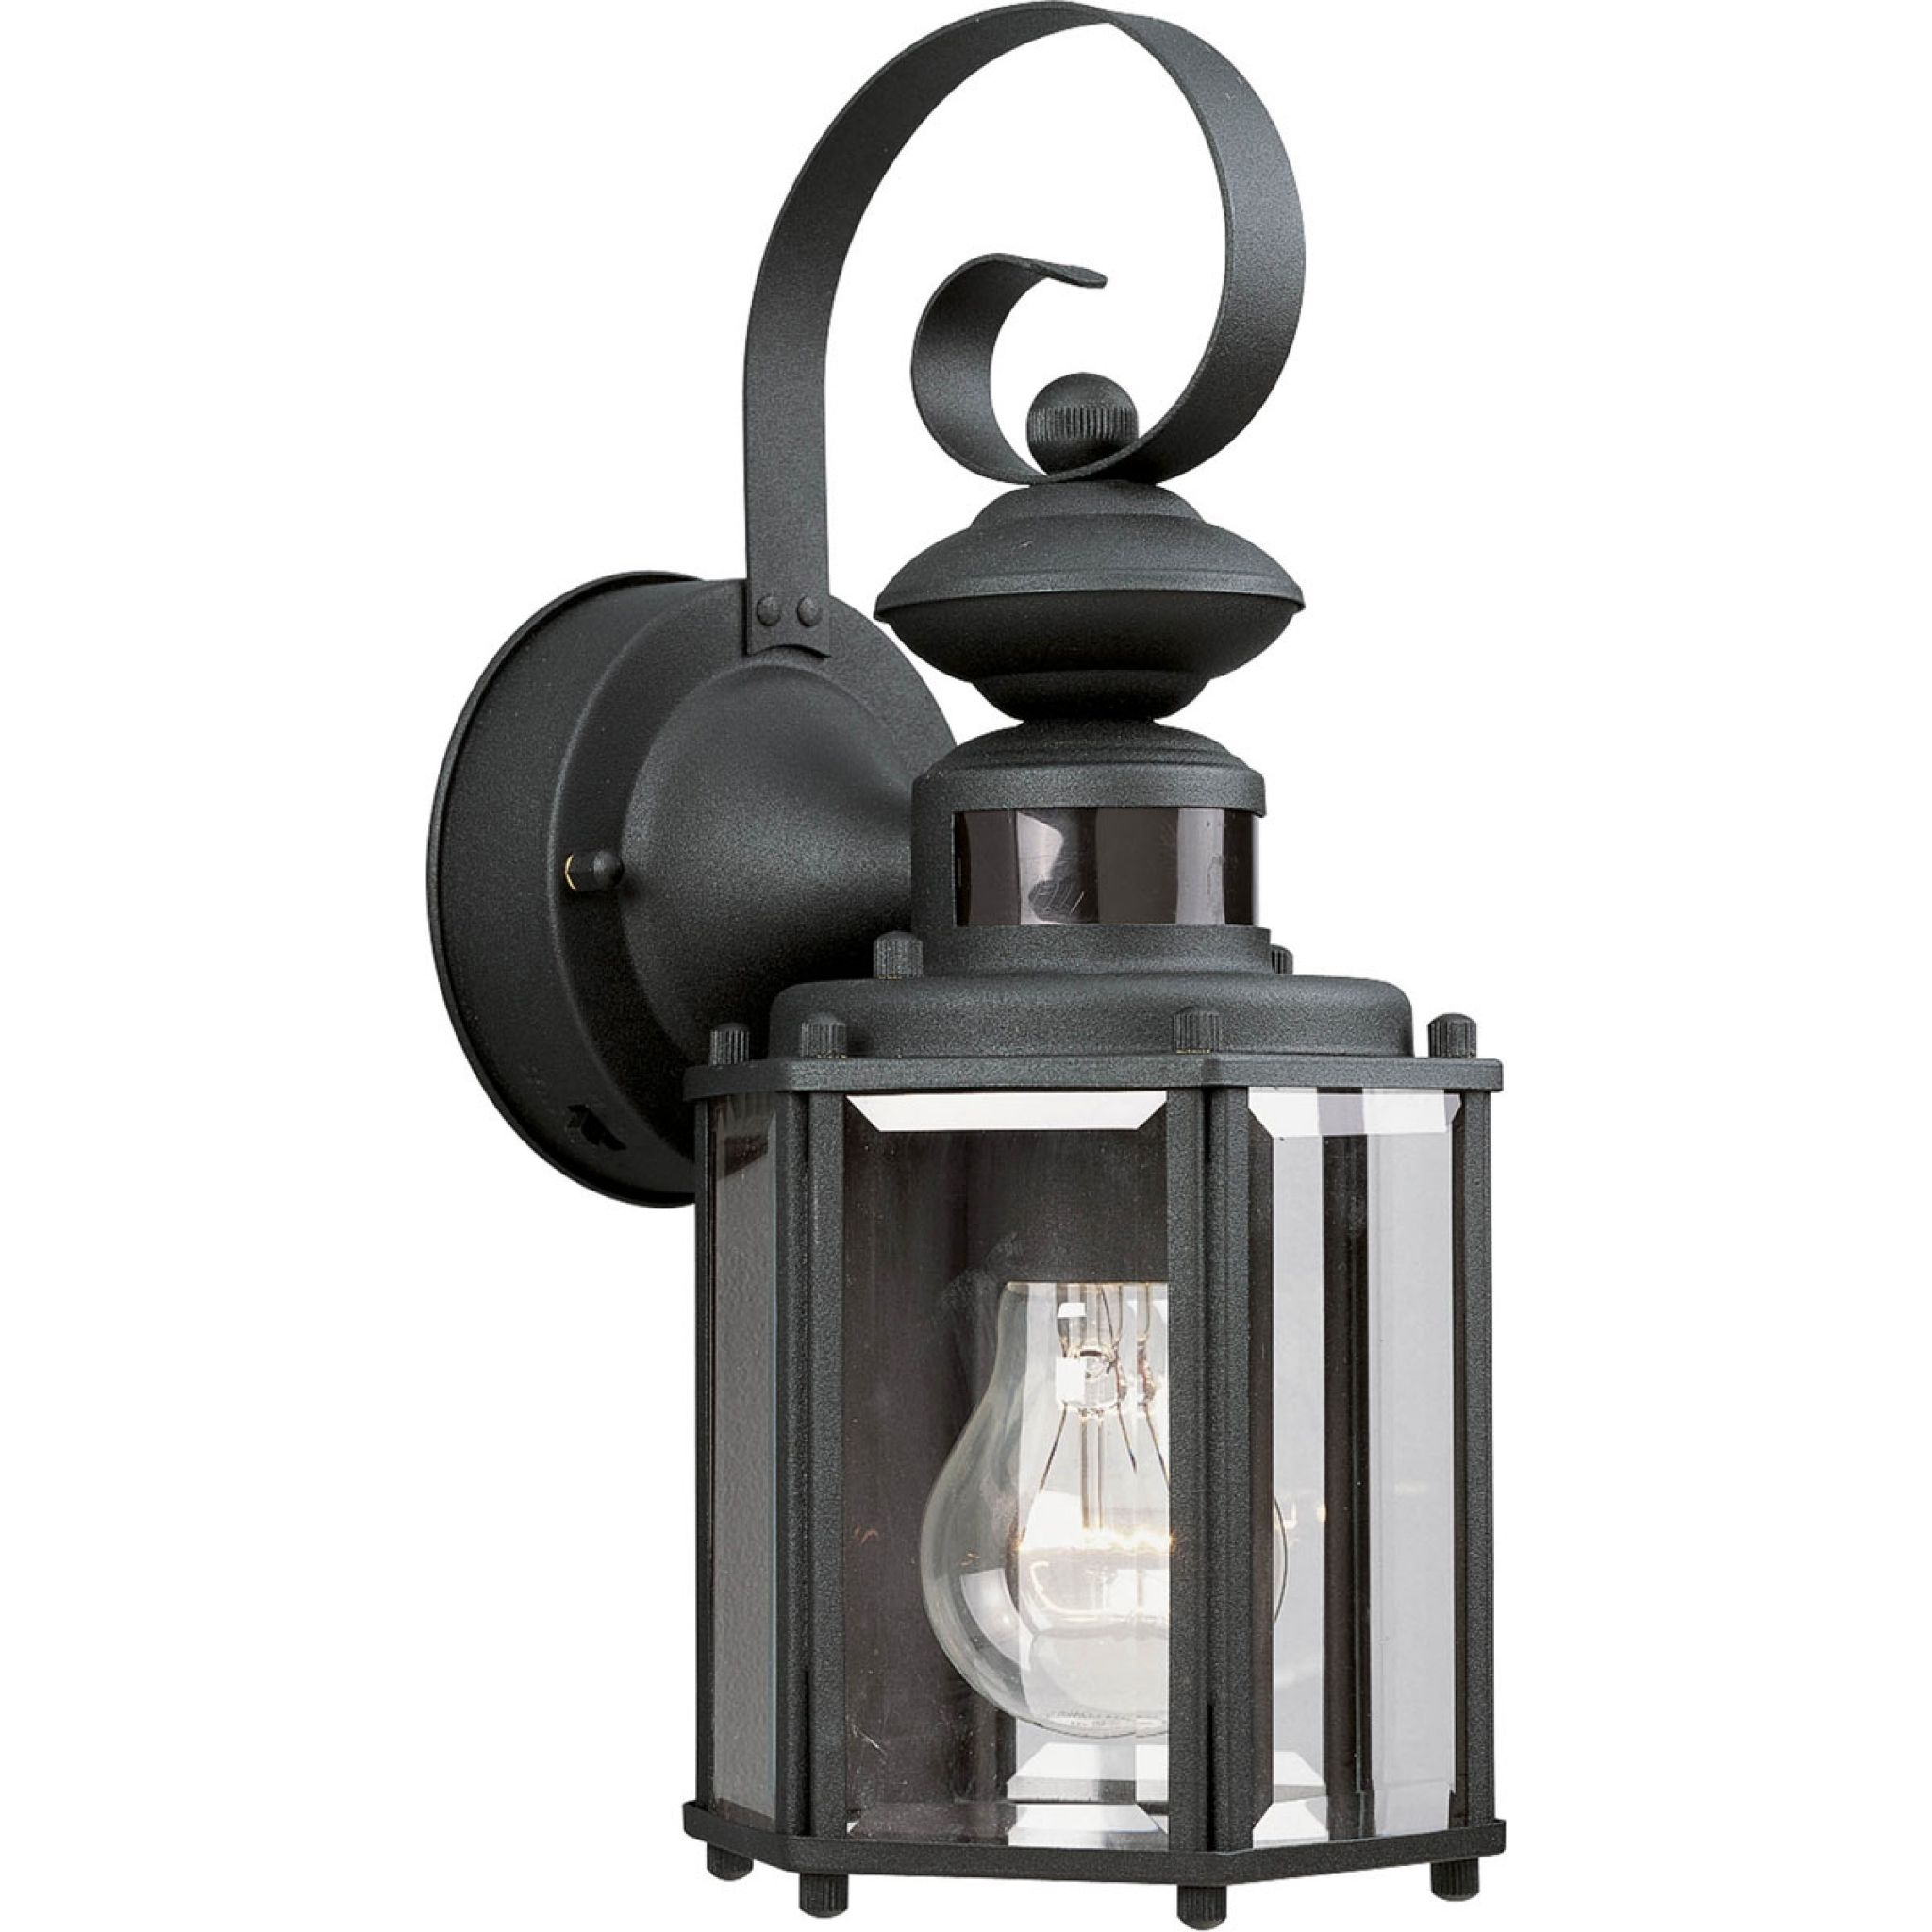 Unique Motion Sensor Porch Light